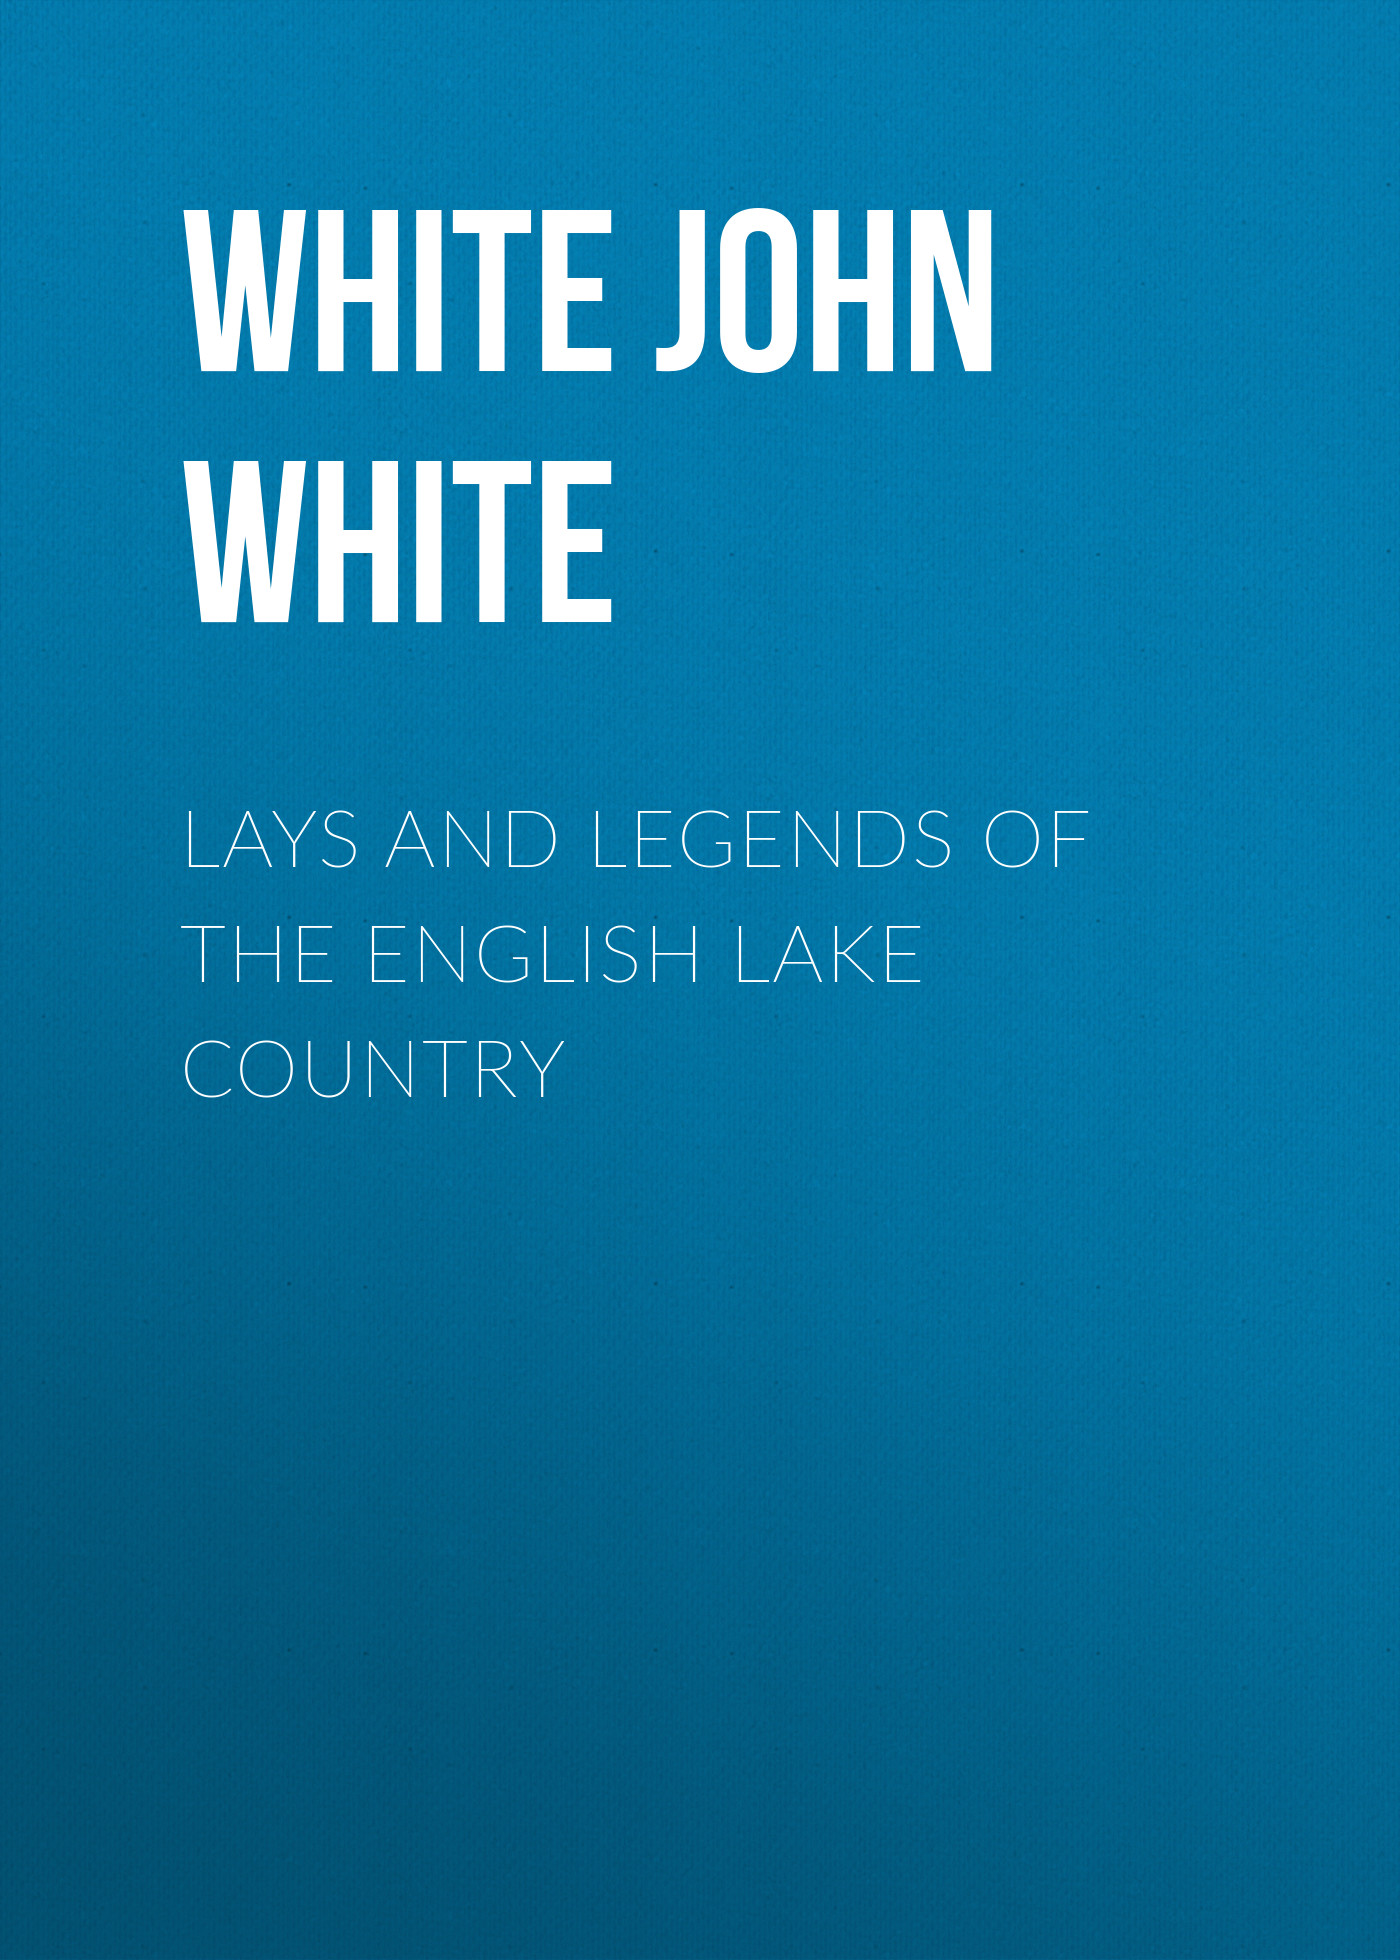 White John White Lays and Legends of the English Lake Country dj v lays dj v lays never ever 2 mp3